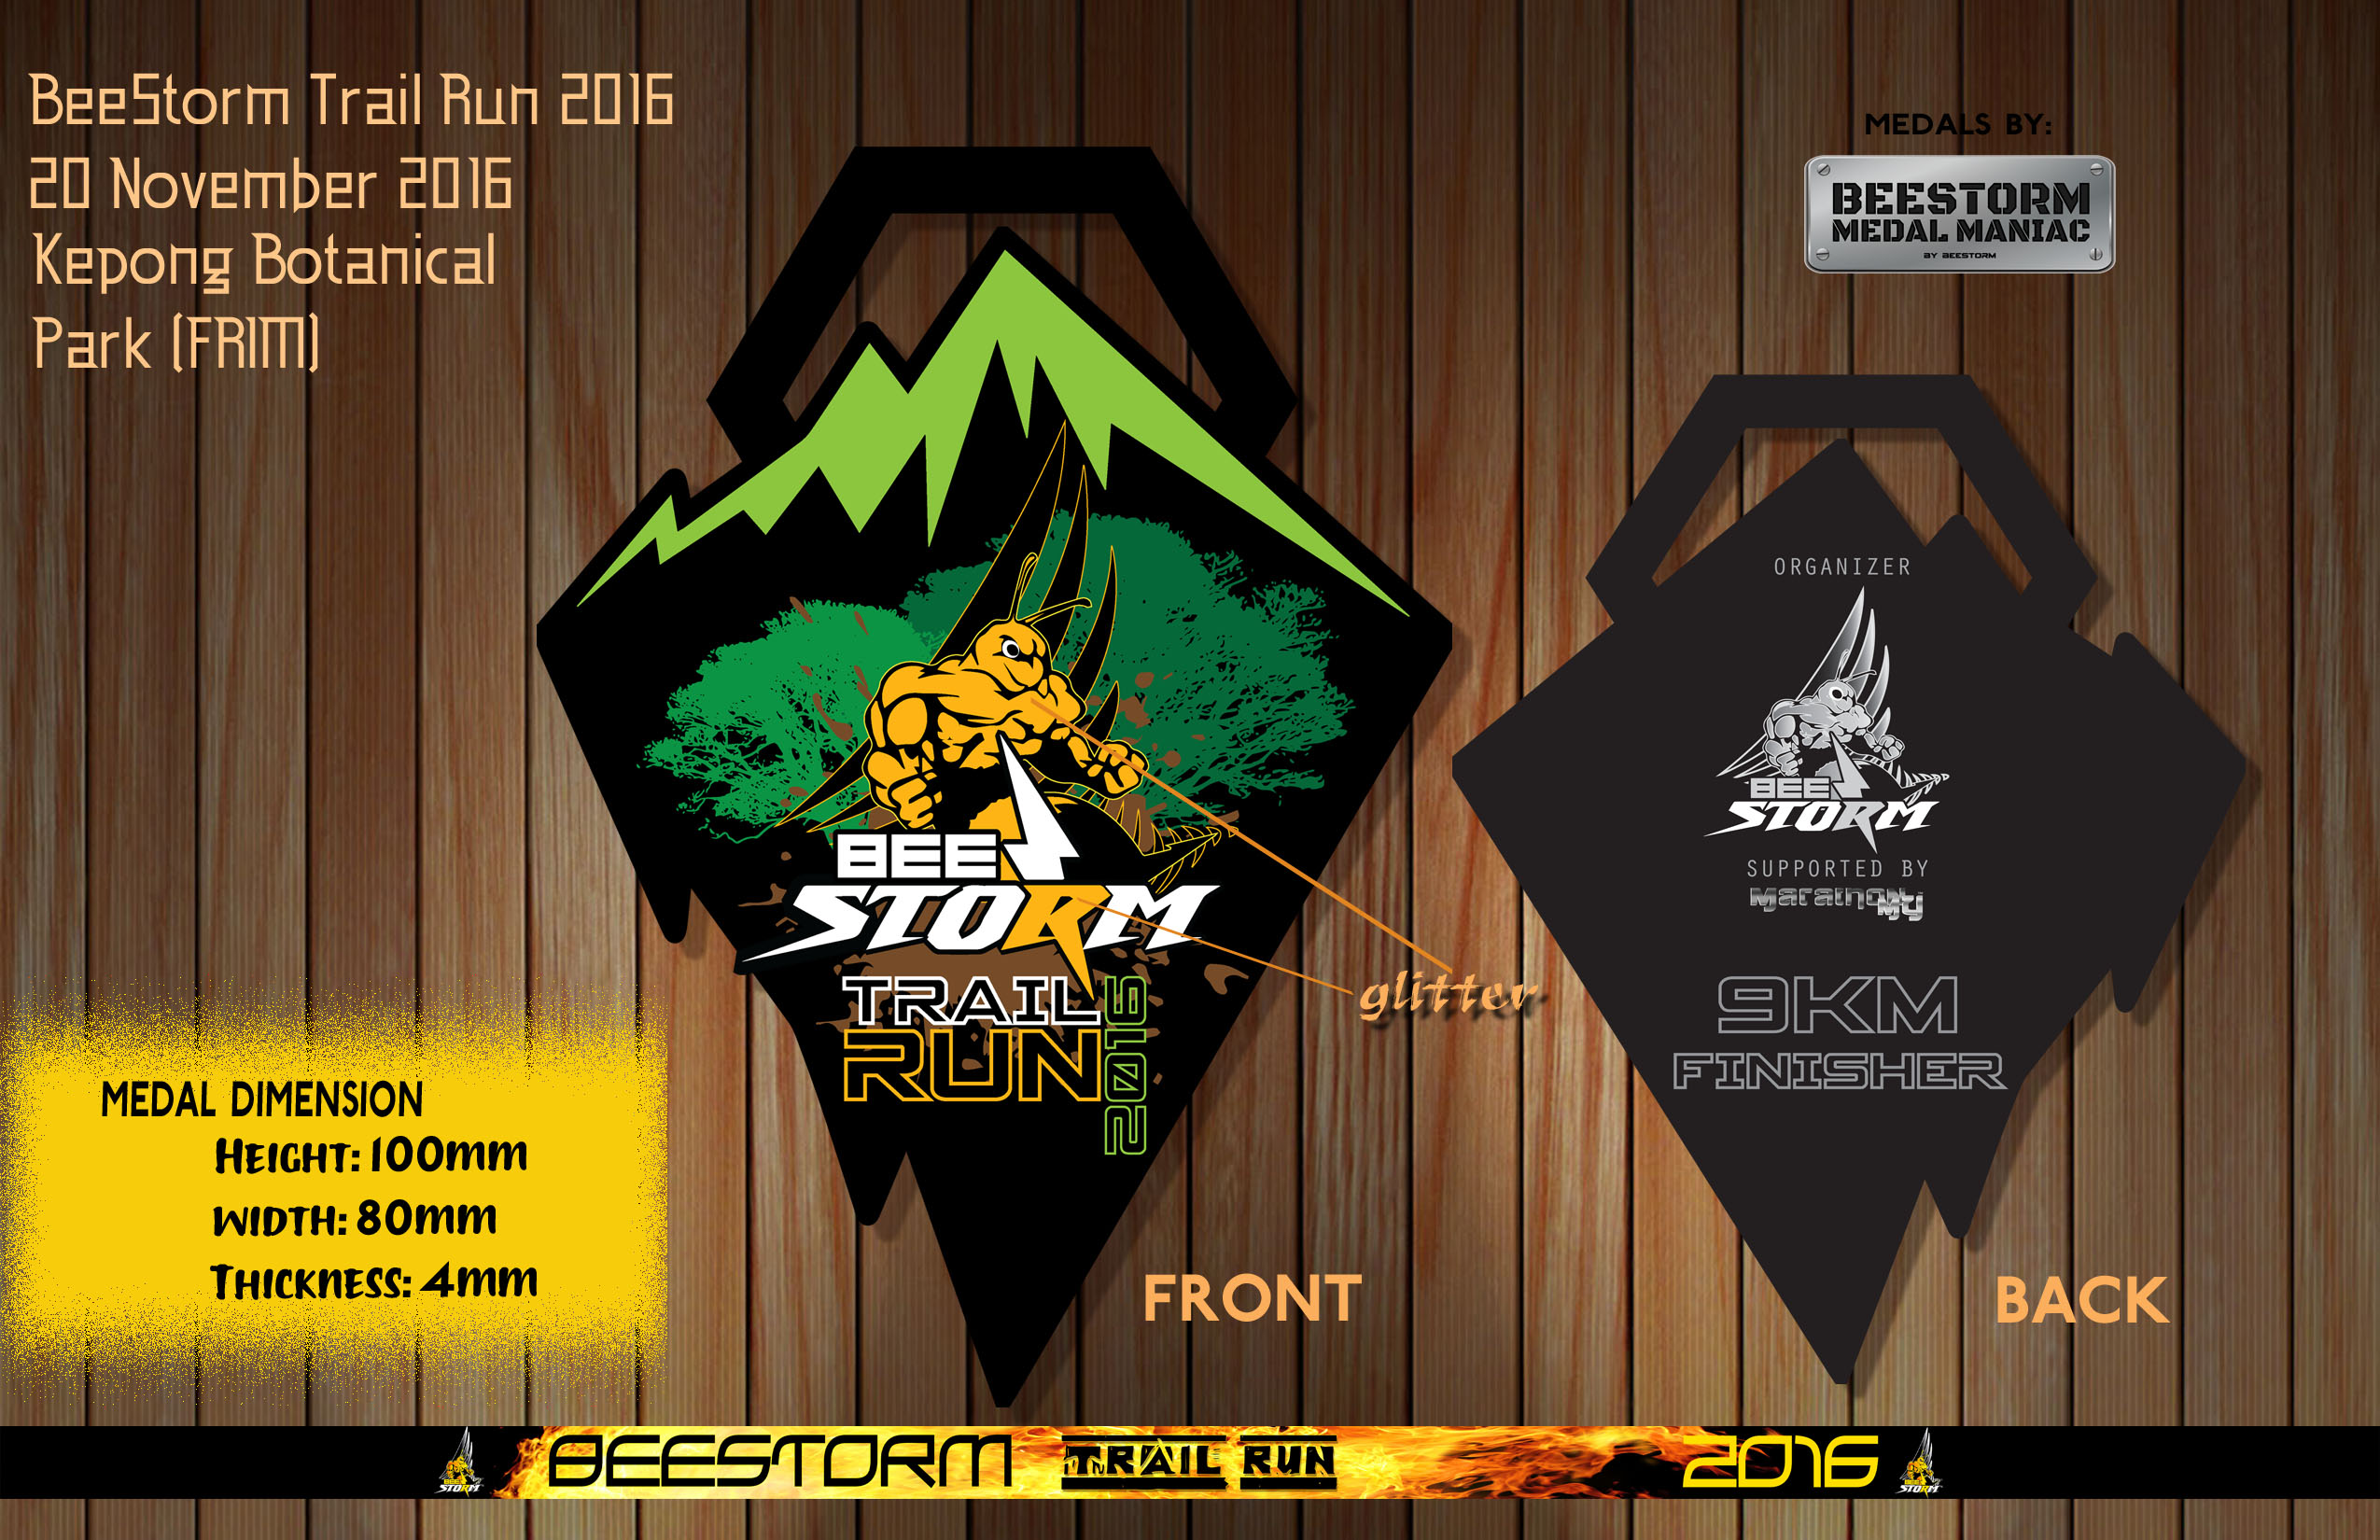 BEESTORM TRAIL RUN 2016